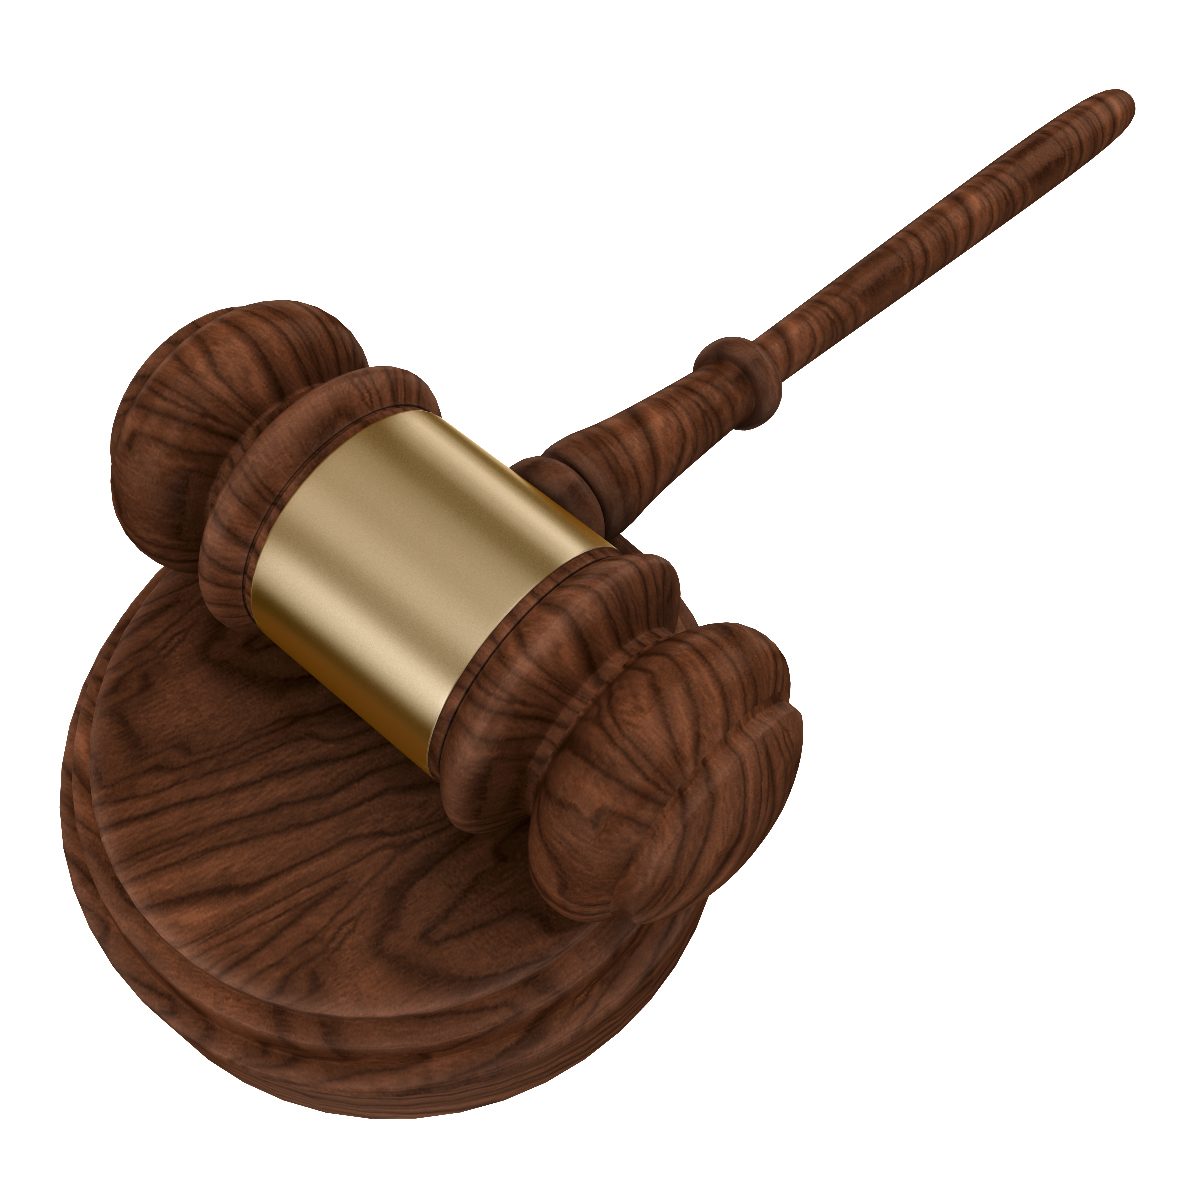 Judges Hammer - ClipArt Best